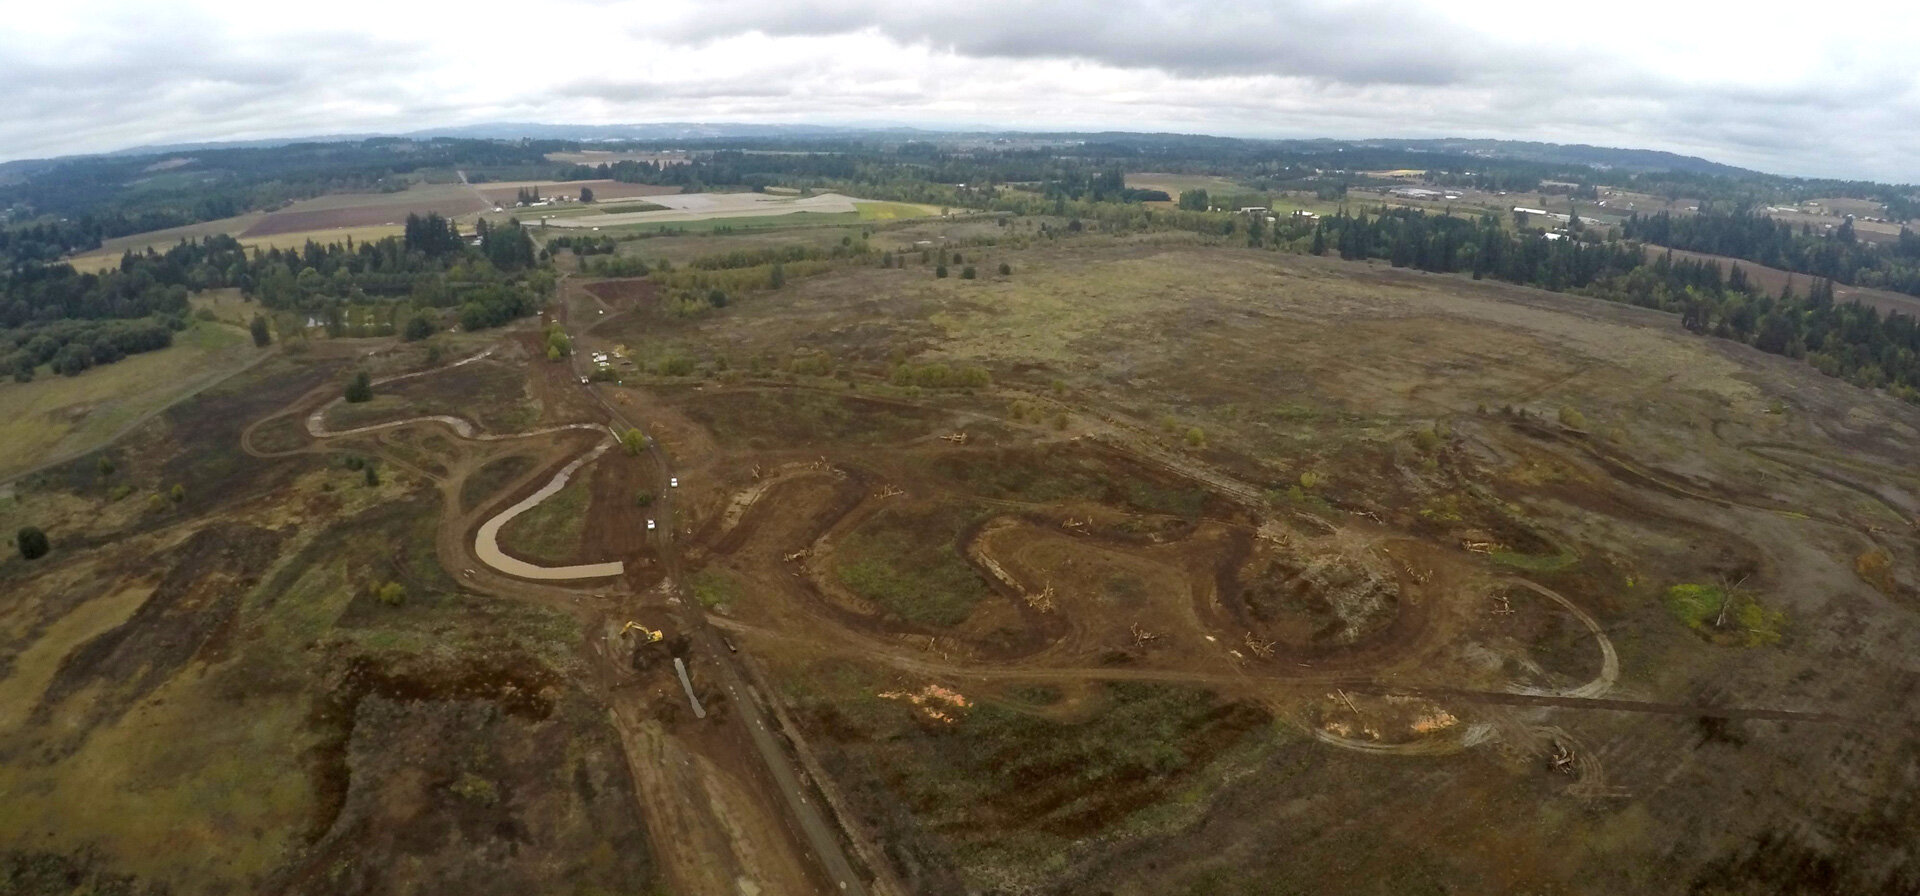 A 400-foot view of the project shows the curvature of the new Chicken Creek channel.